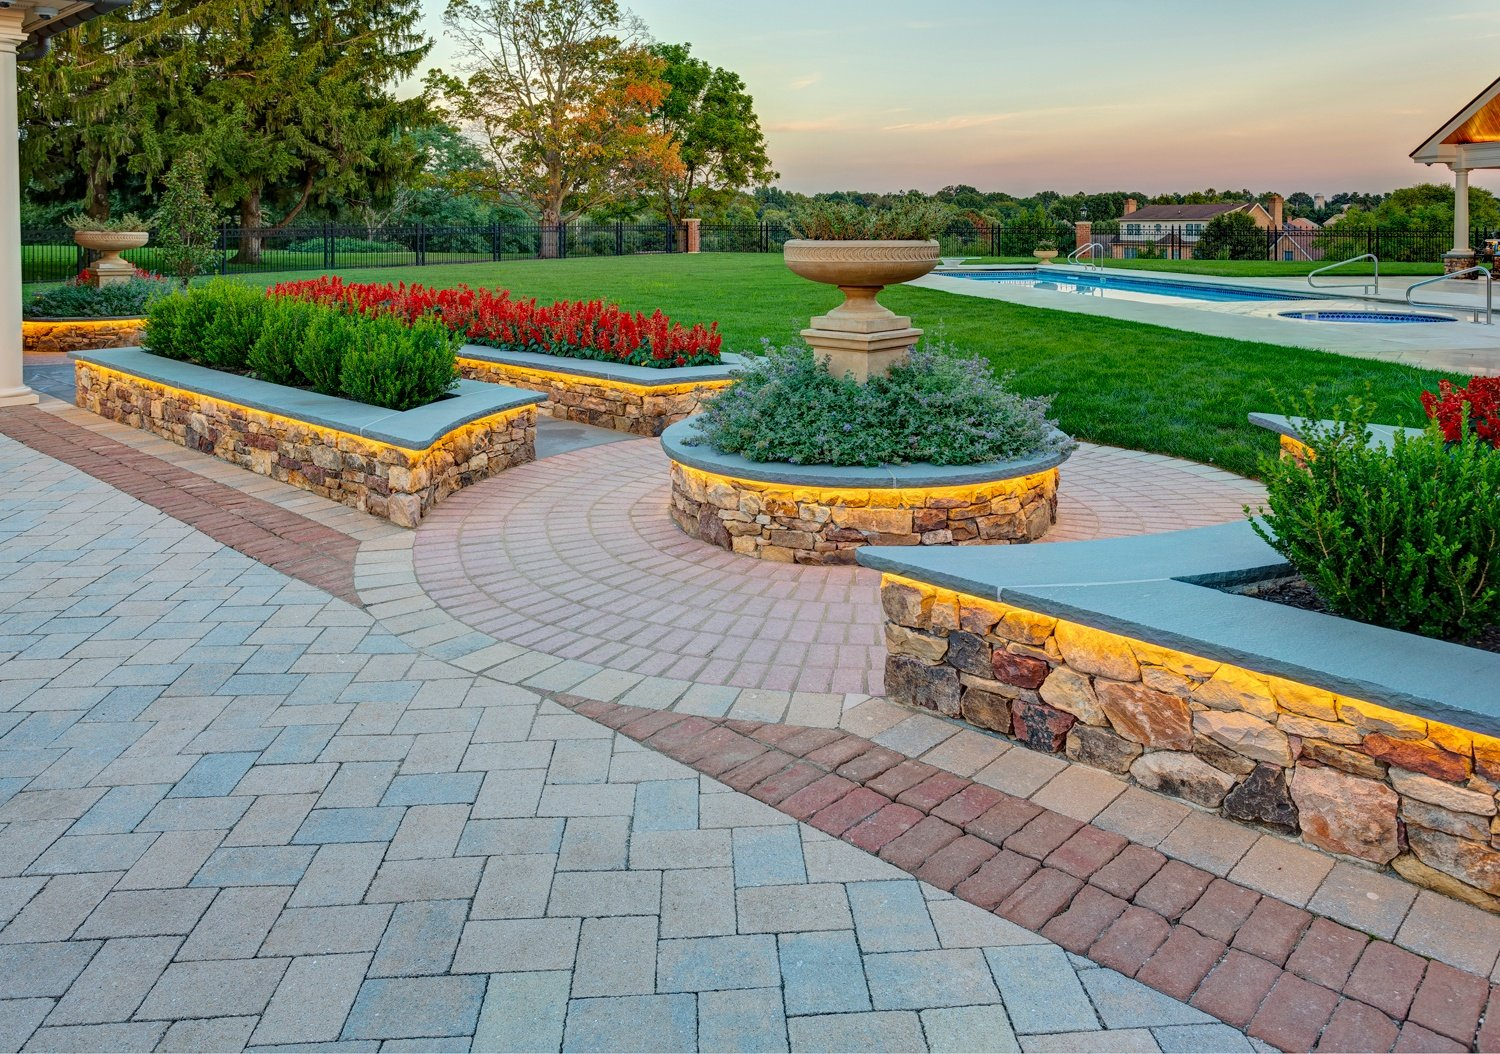 Landscape designer and landscape architect for Lancaster, PA, Hersey, York, Reading.